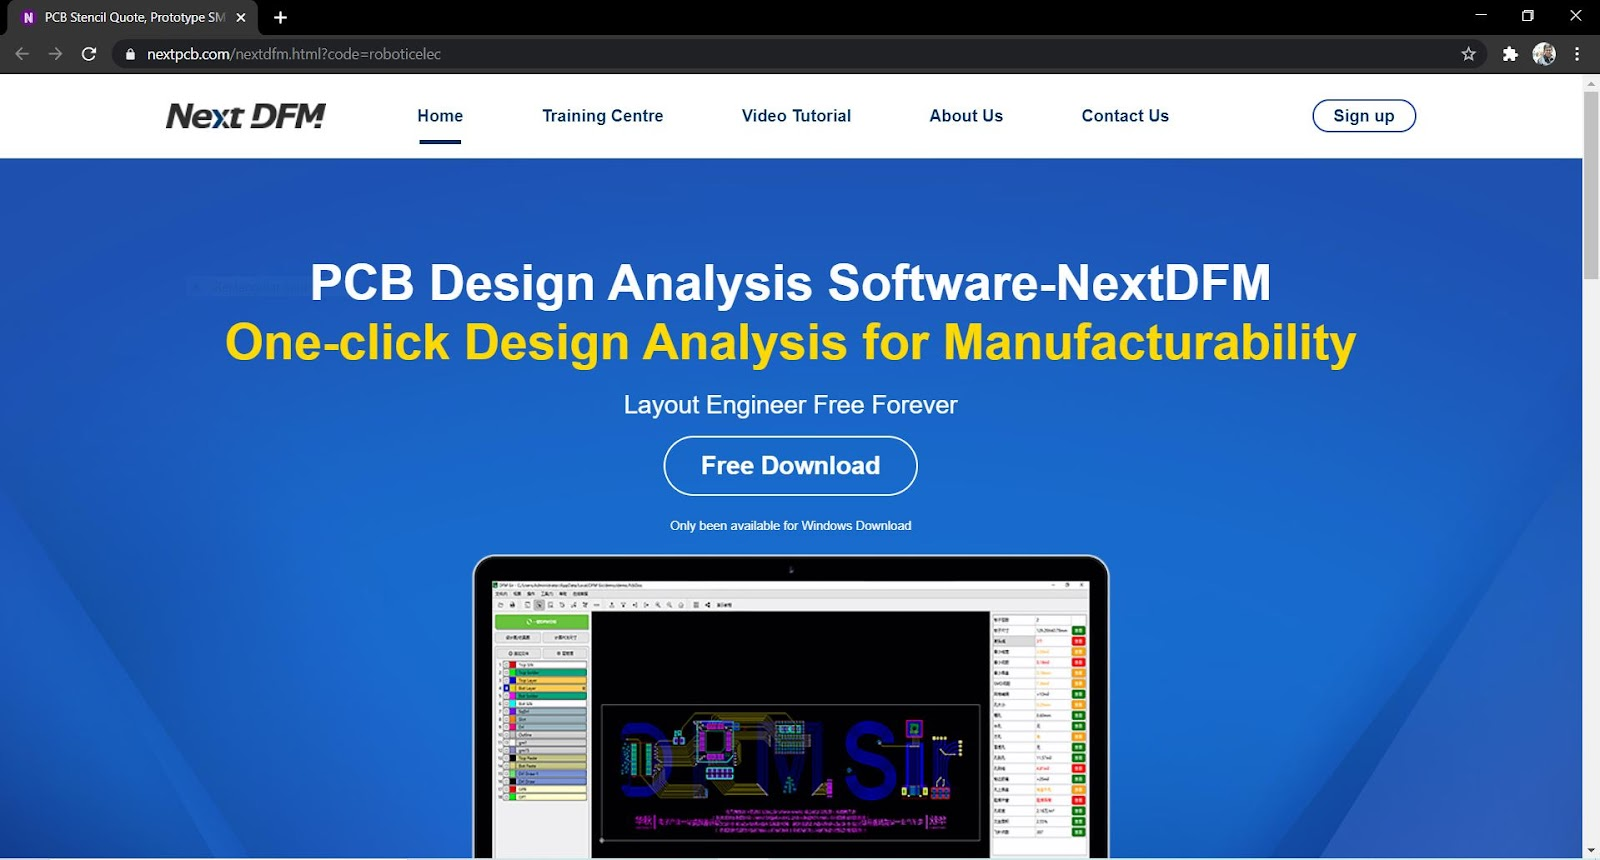 REVIEW ON PCB Design Analysis Software